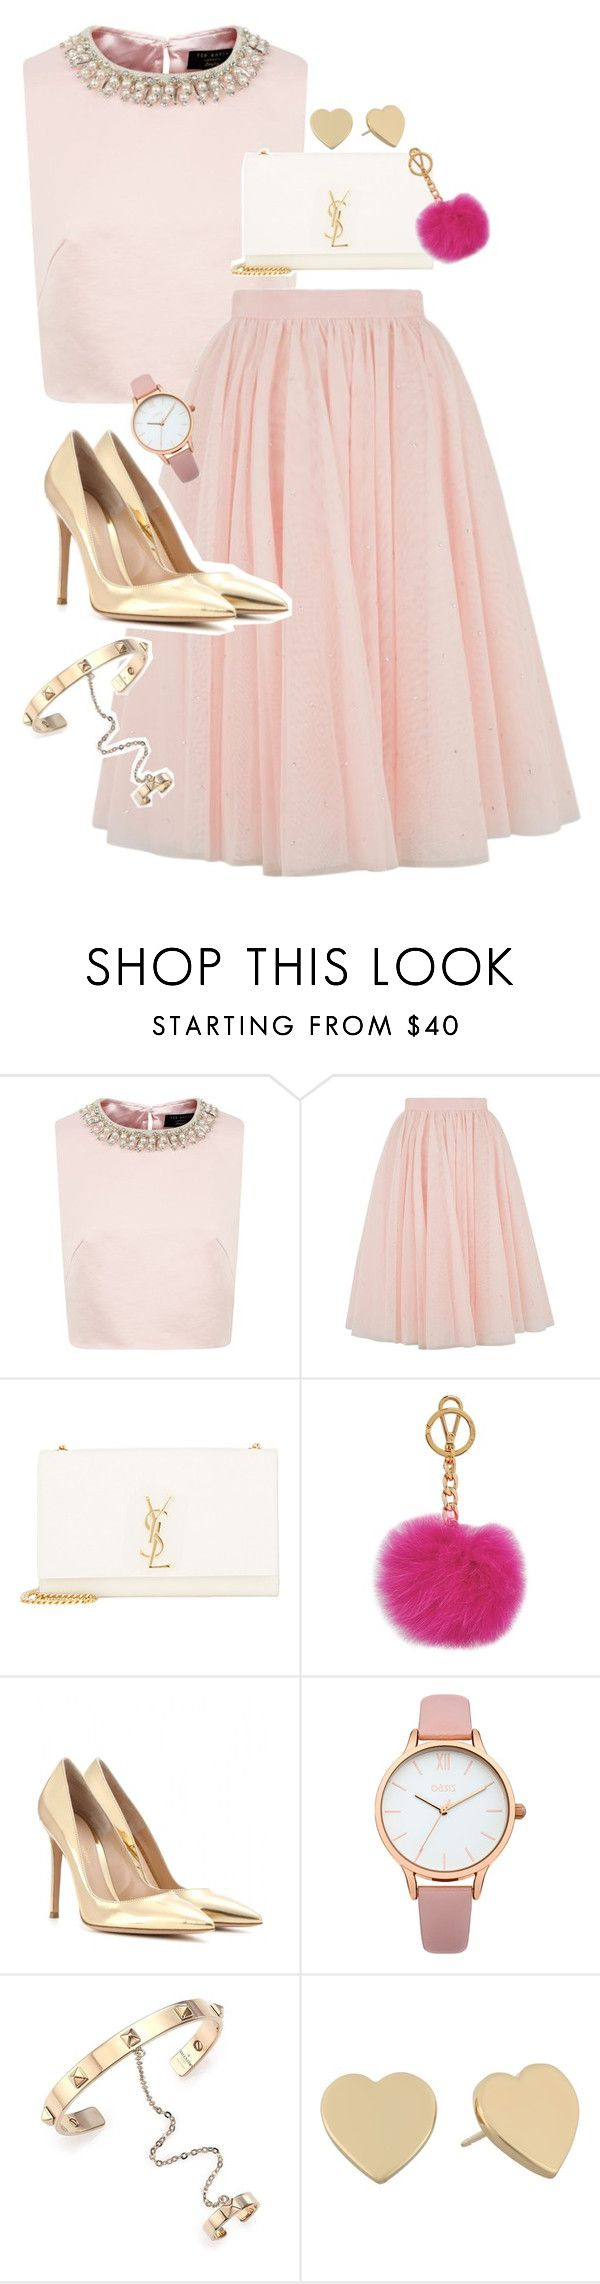 """Pretty in pink"" by prettycatty ❤ liked on Polyvore featuring Ted Baker, Yves Saint Laurent, Michael Kors, Gianvito Rossi, Oasis, Valentino and Kate Spade"